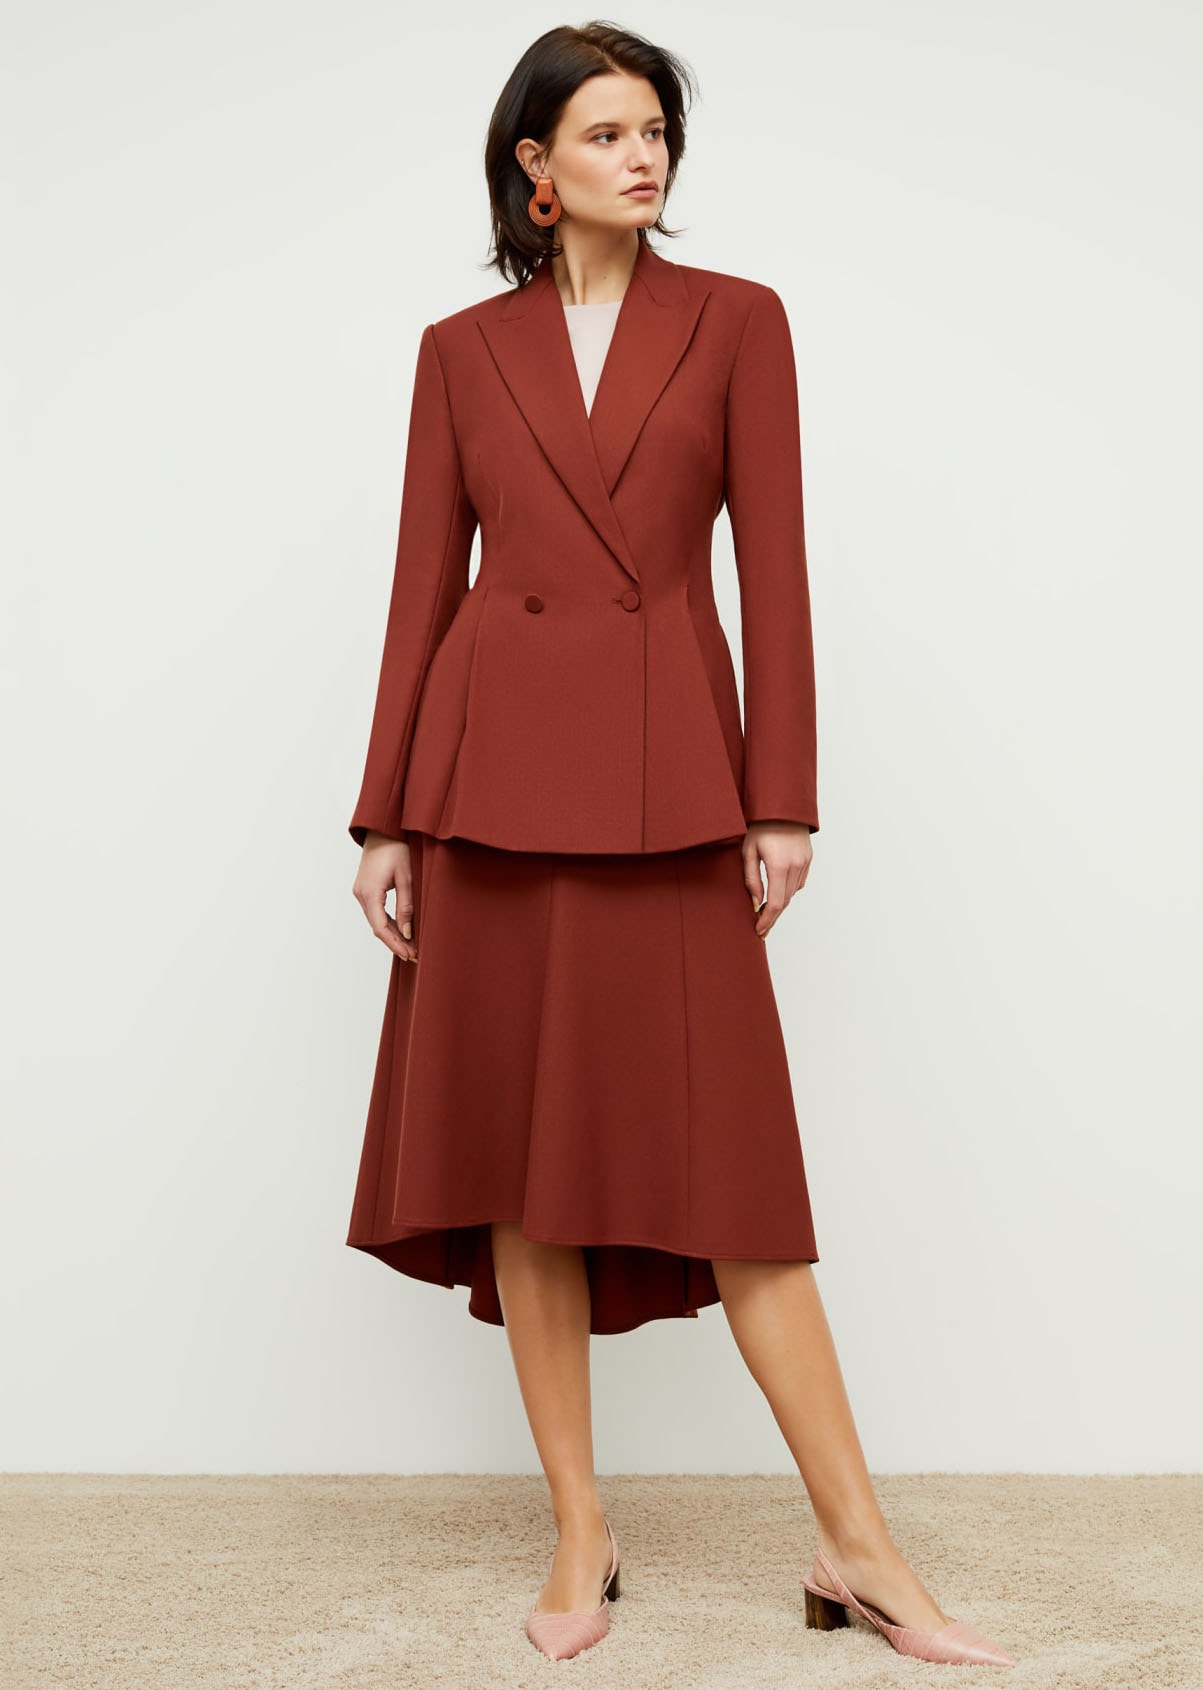 The New York-based professional womenswear label also offers couch-to-conference sets